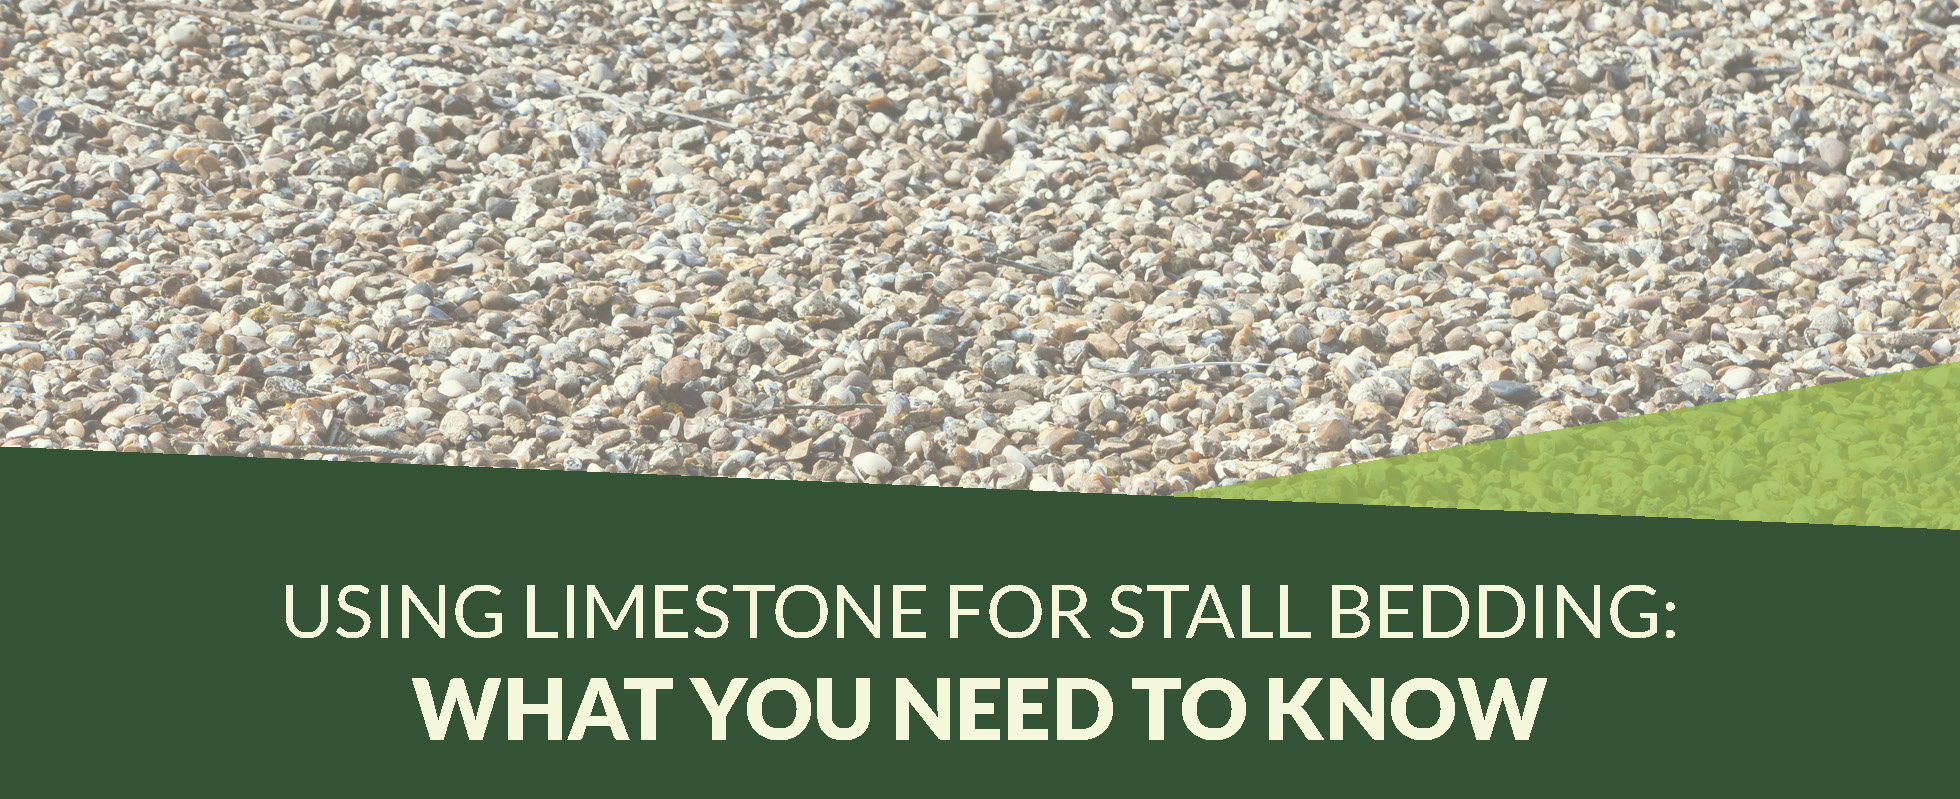 Comfort Level Greatly Depends On Stall Floor Construction And Covering Today Many Keepers Use Limestone For Livestock Bedding